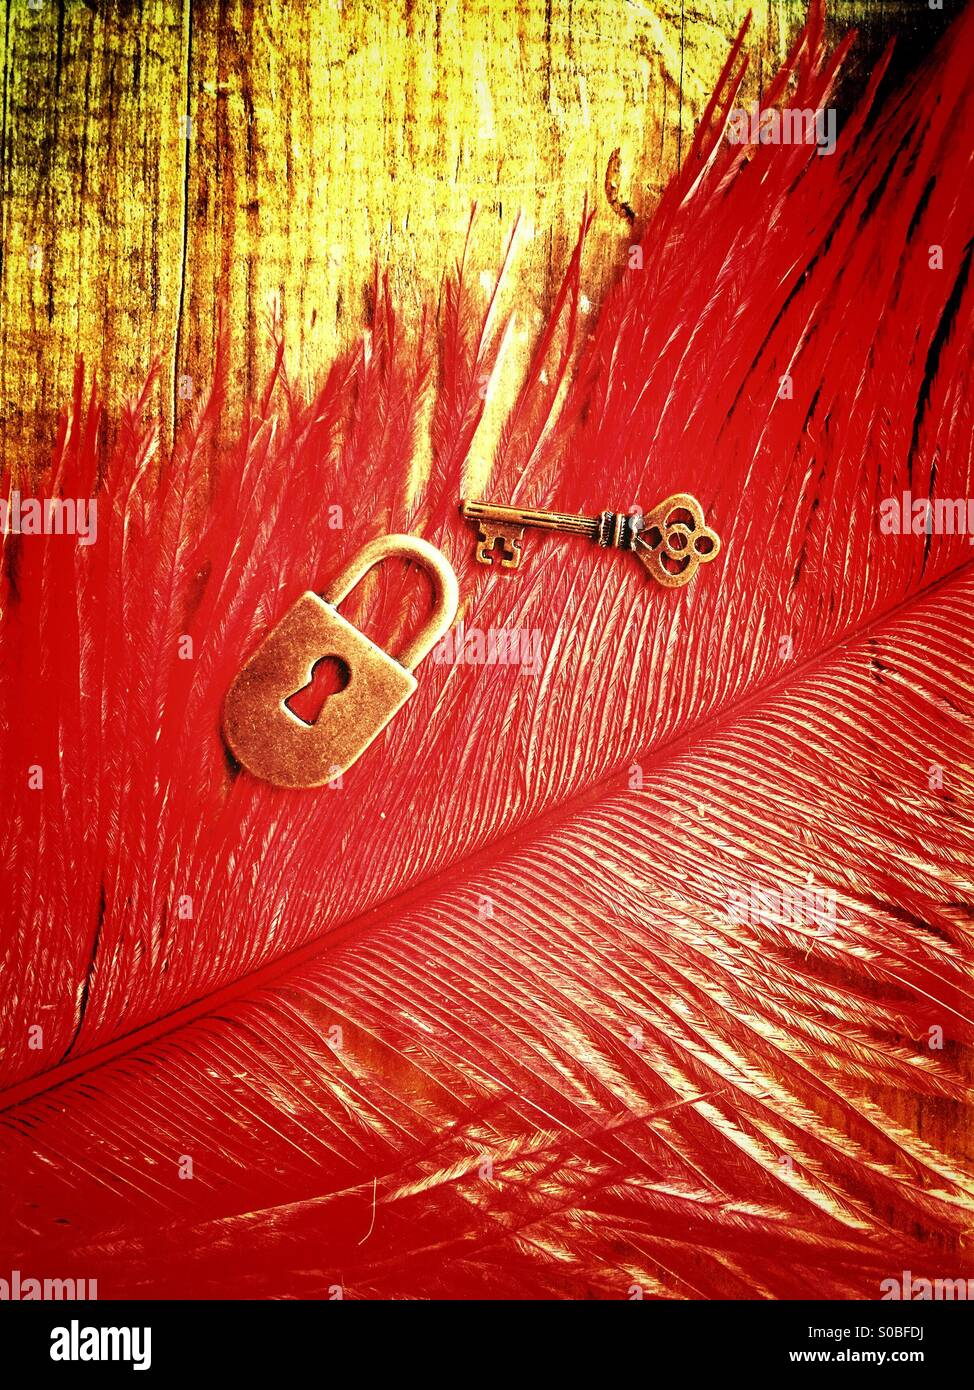 Lock and key over a red feather - Stock Image